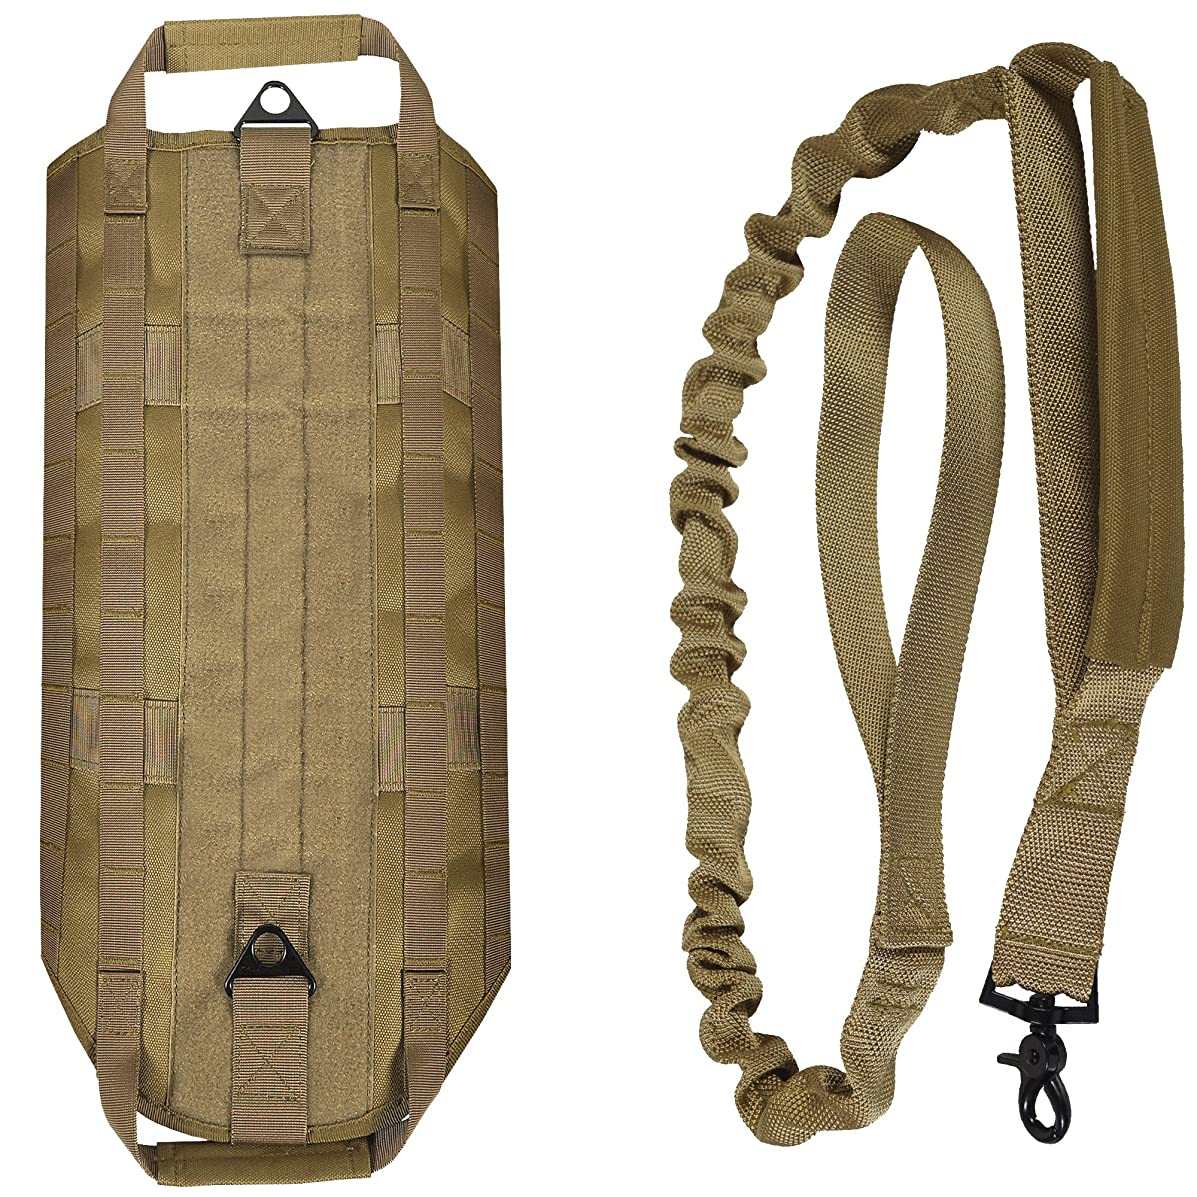 LIVABIT Canine Service Dog Tactical Molle Vest Harness + Matching Heavy Duty Bungee Leash Strap [ Also for Cats & Puppies ]